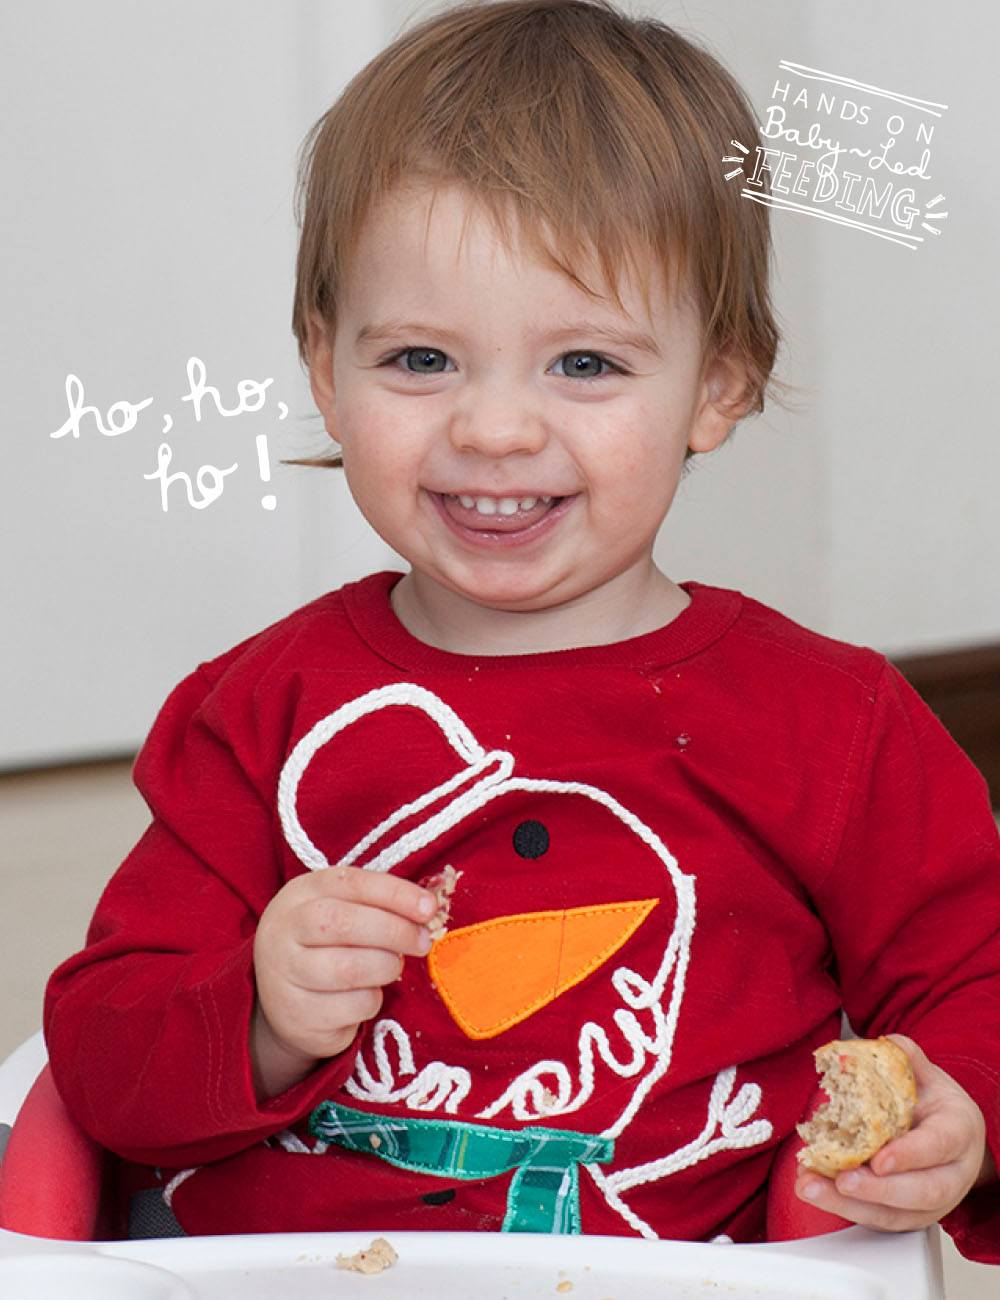 Cranberry and Orange Christmas Muffins Baby Led Feeding Delicious muffins perfect for Christmas baby led weaning. This is a perfect healthy baby muffin especially for a Christmas treat and is a baby approved muffin recipe for baby led weaning. Christmas ideas for baby led weaning.